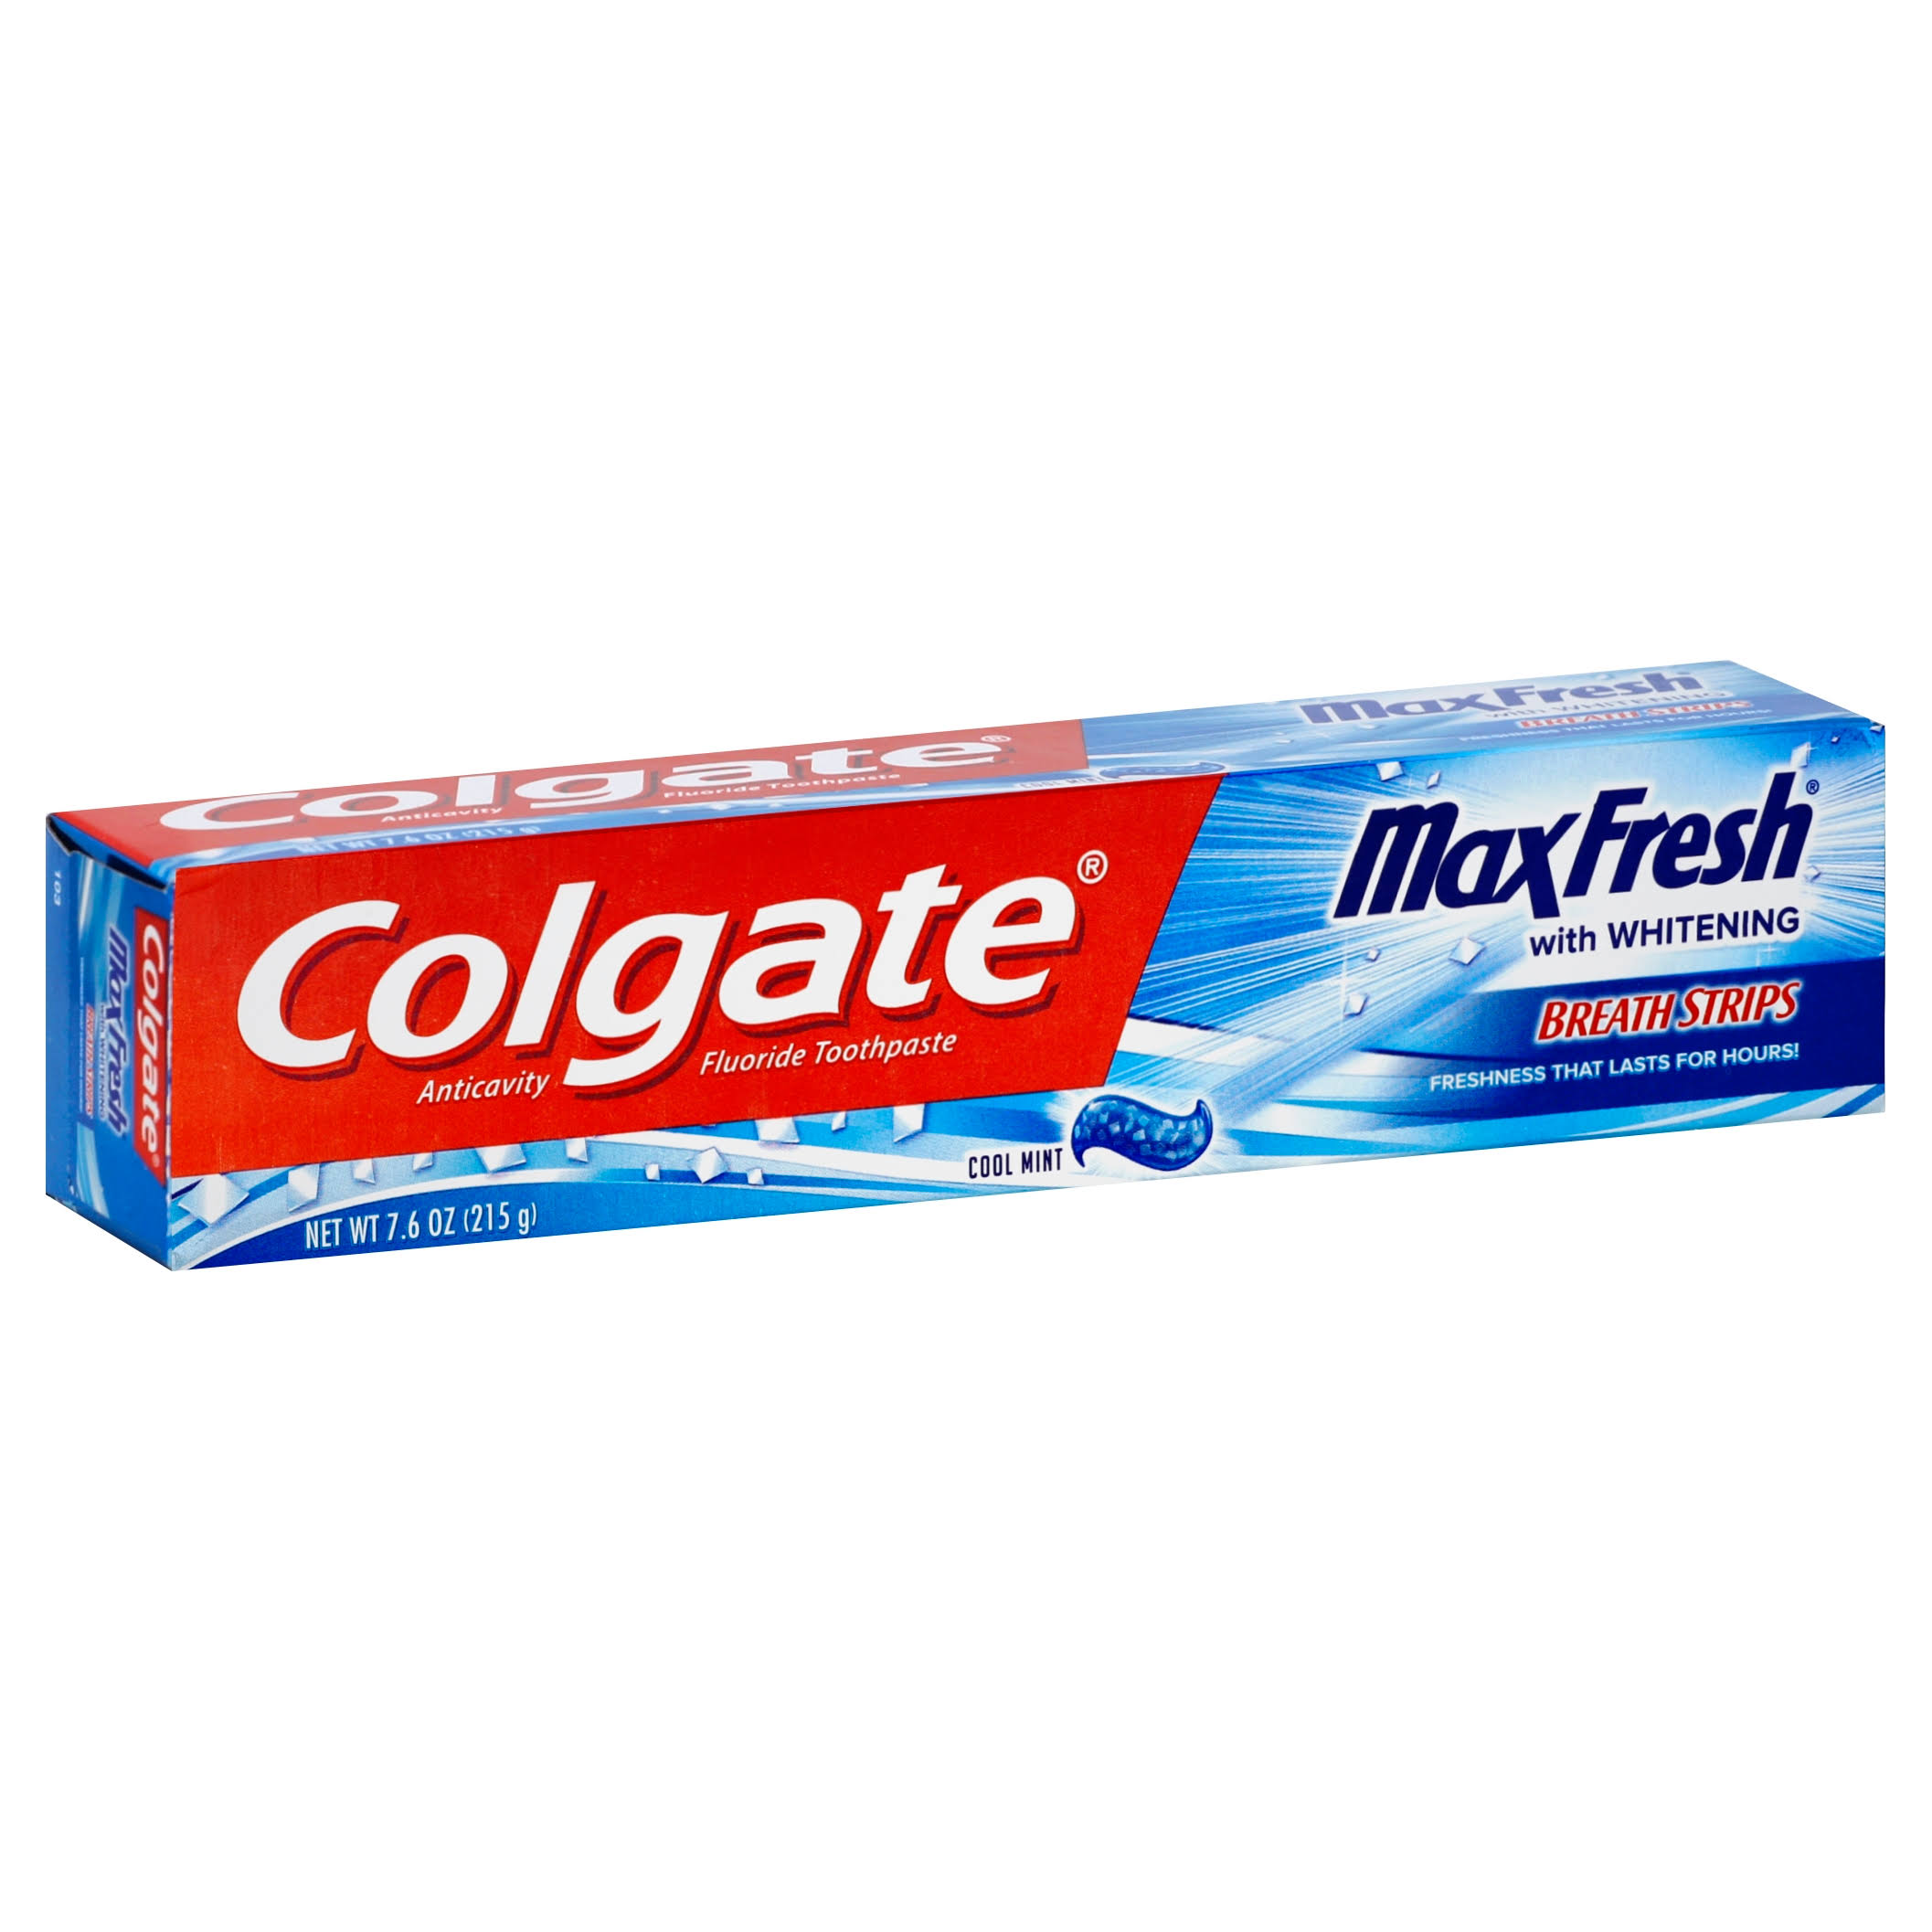 Colgate MaxFresh Toothpaste, Anticavity Fluoride, Cool Mint - 7.6 oz